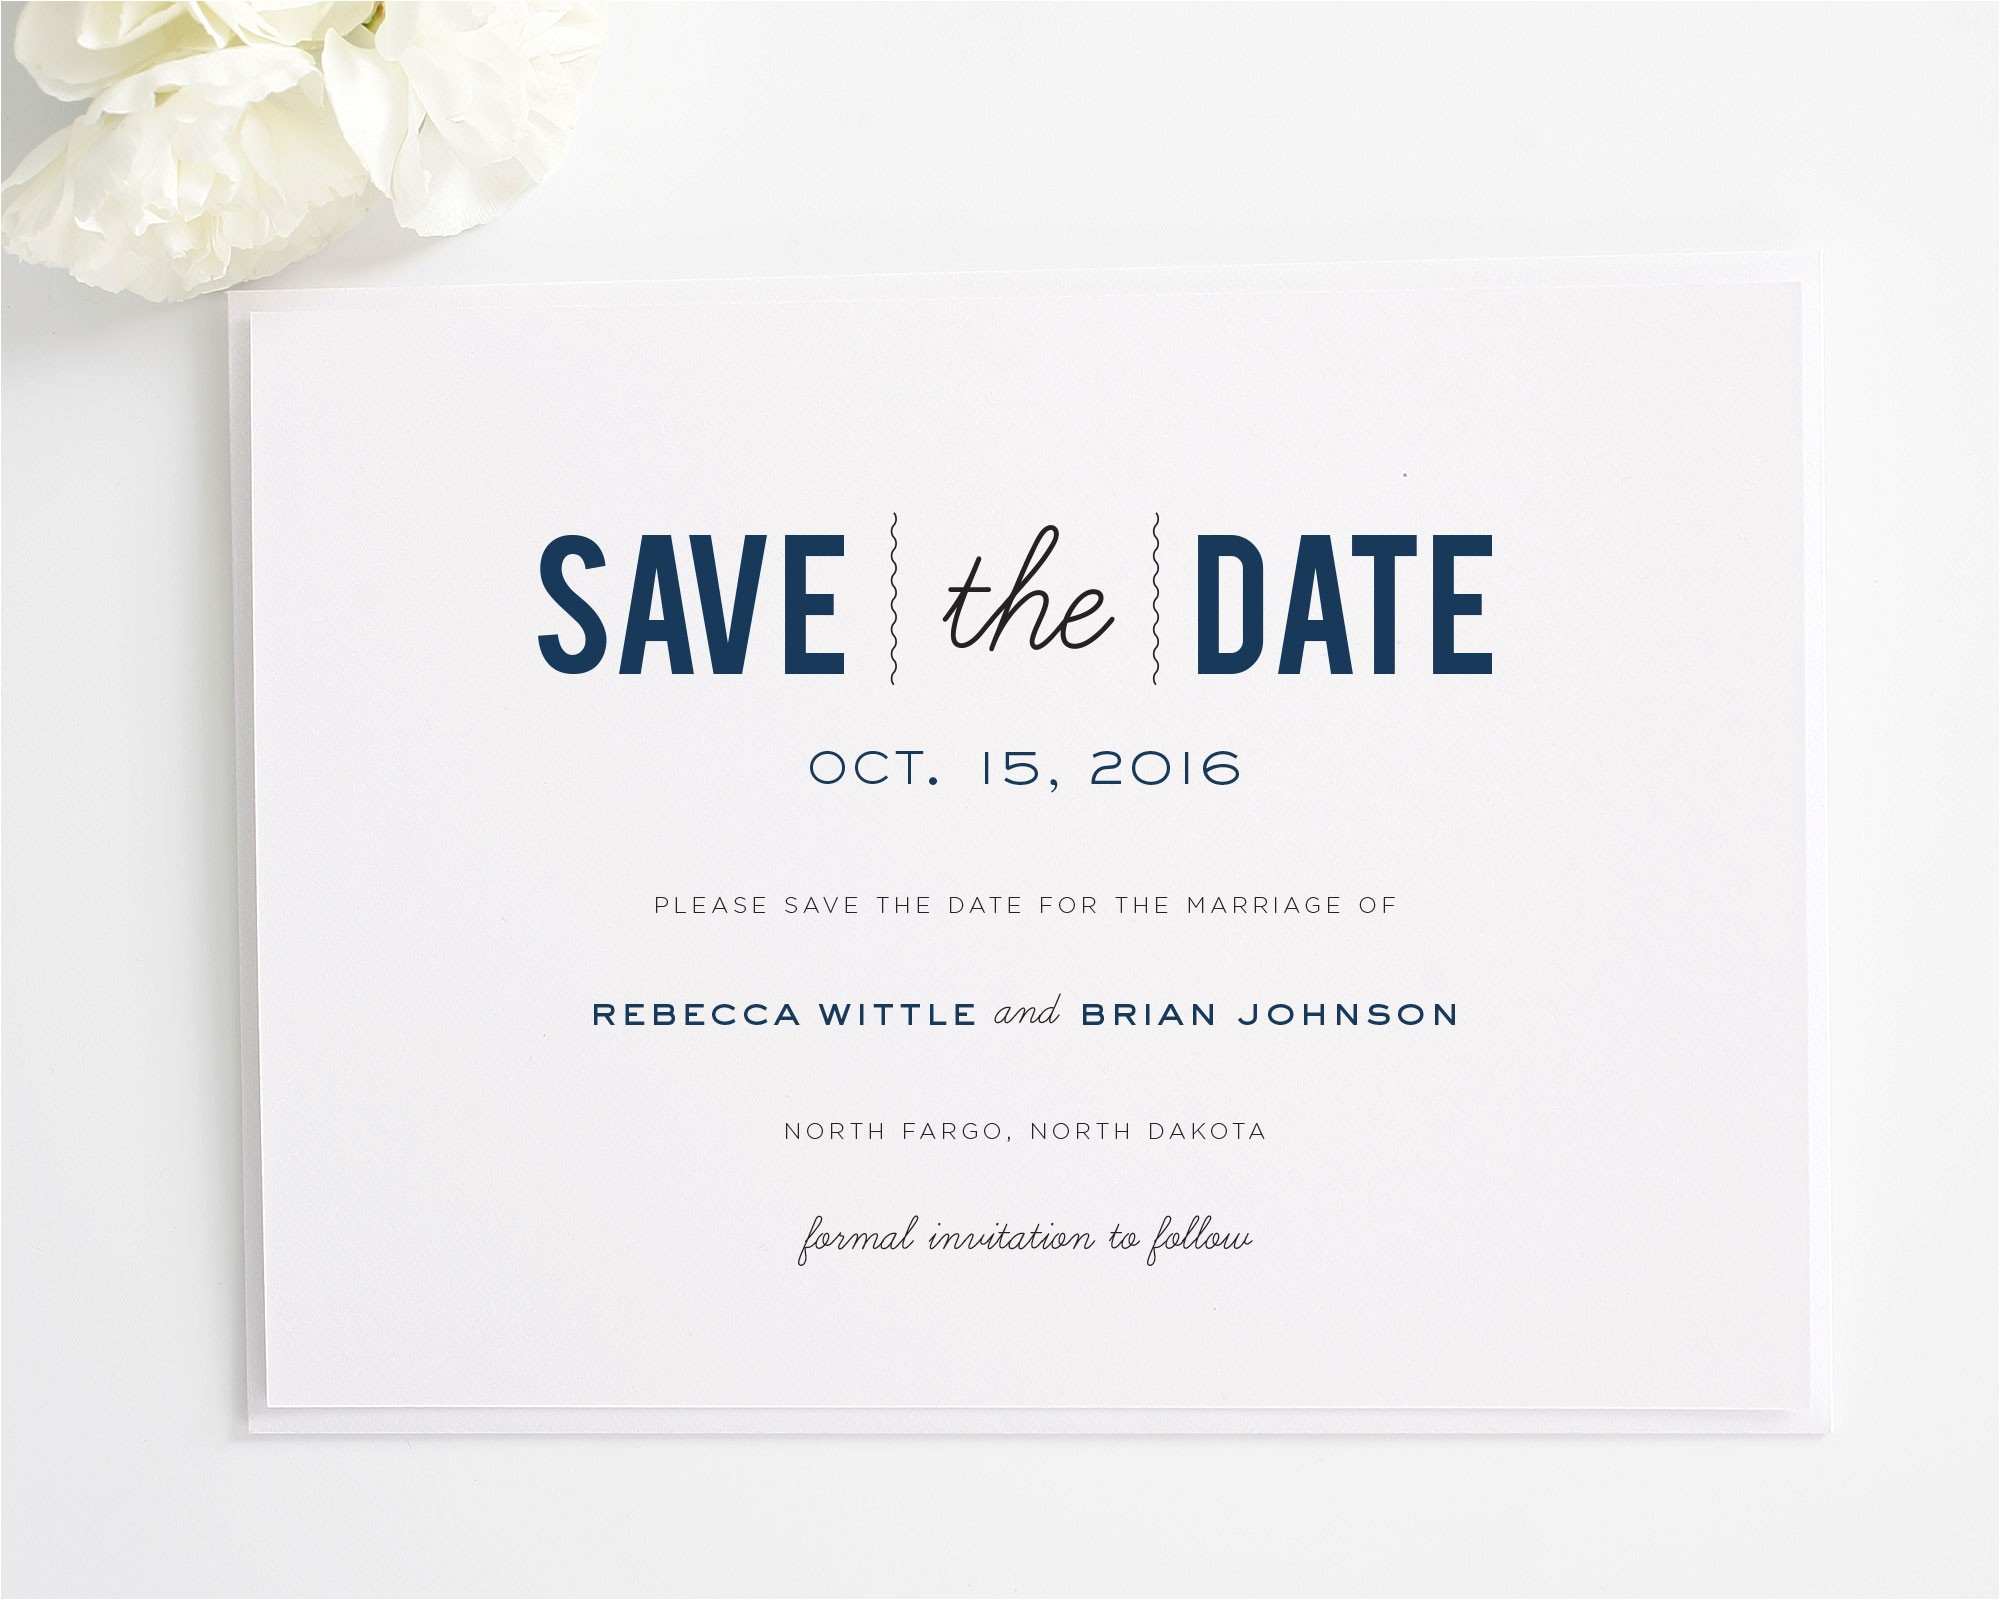 save the date invitation template save the date birthday invite futureclim